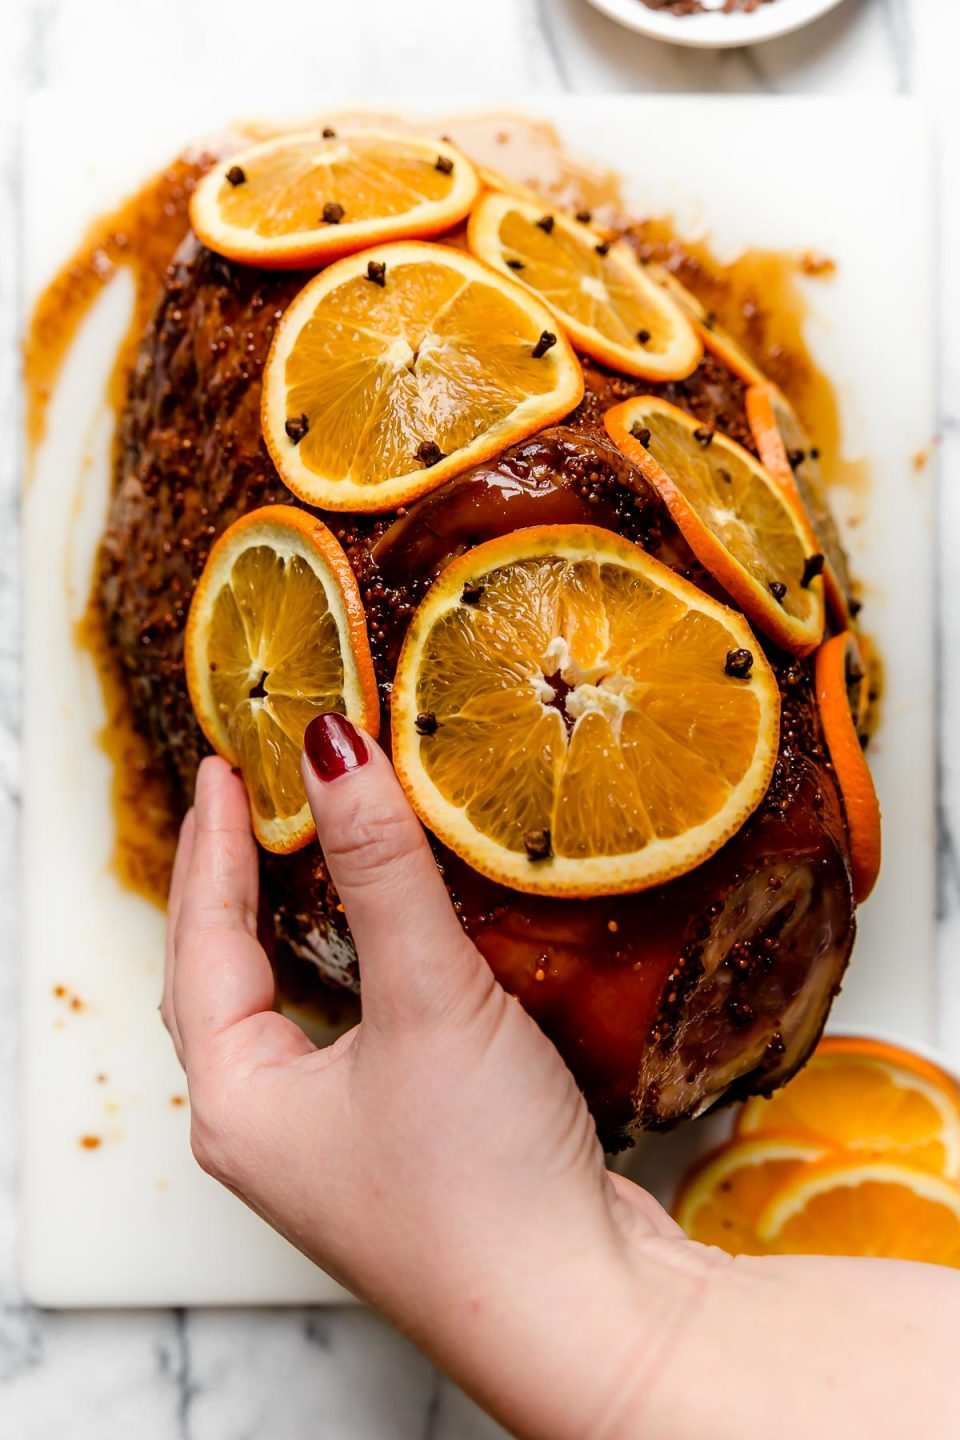 Woman's hands shown studding thinly sliced oranges on ham with whole cloves.